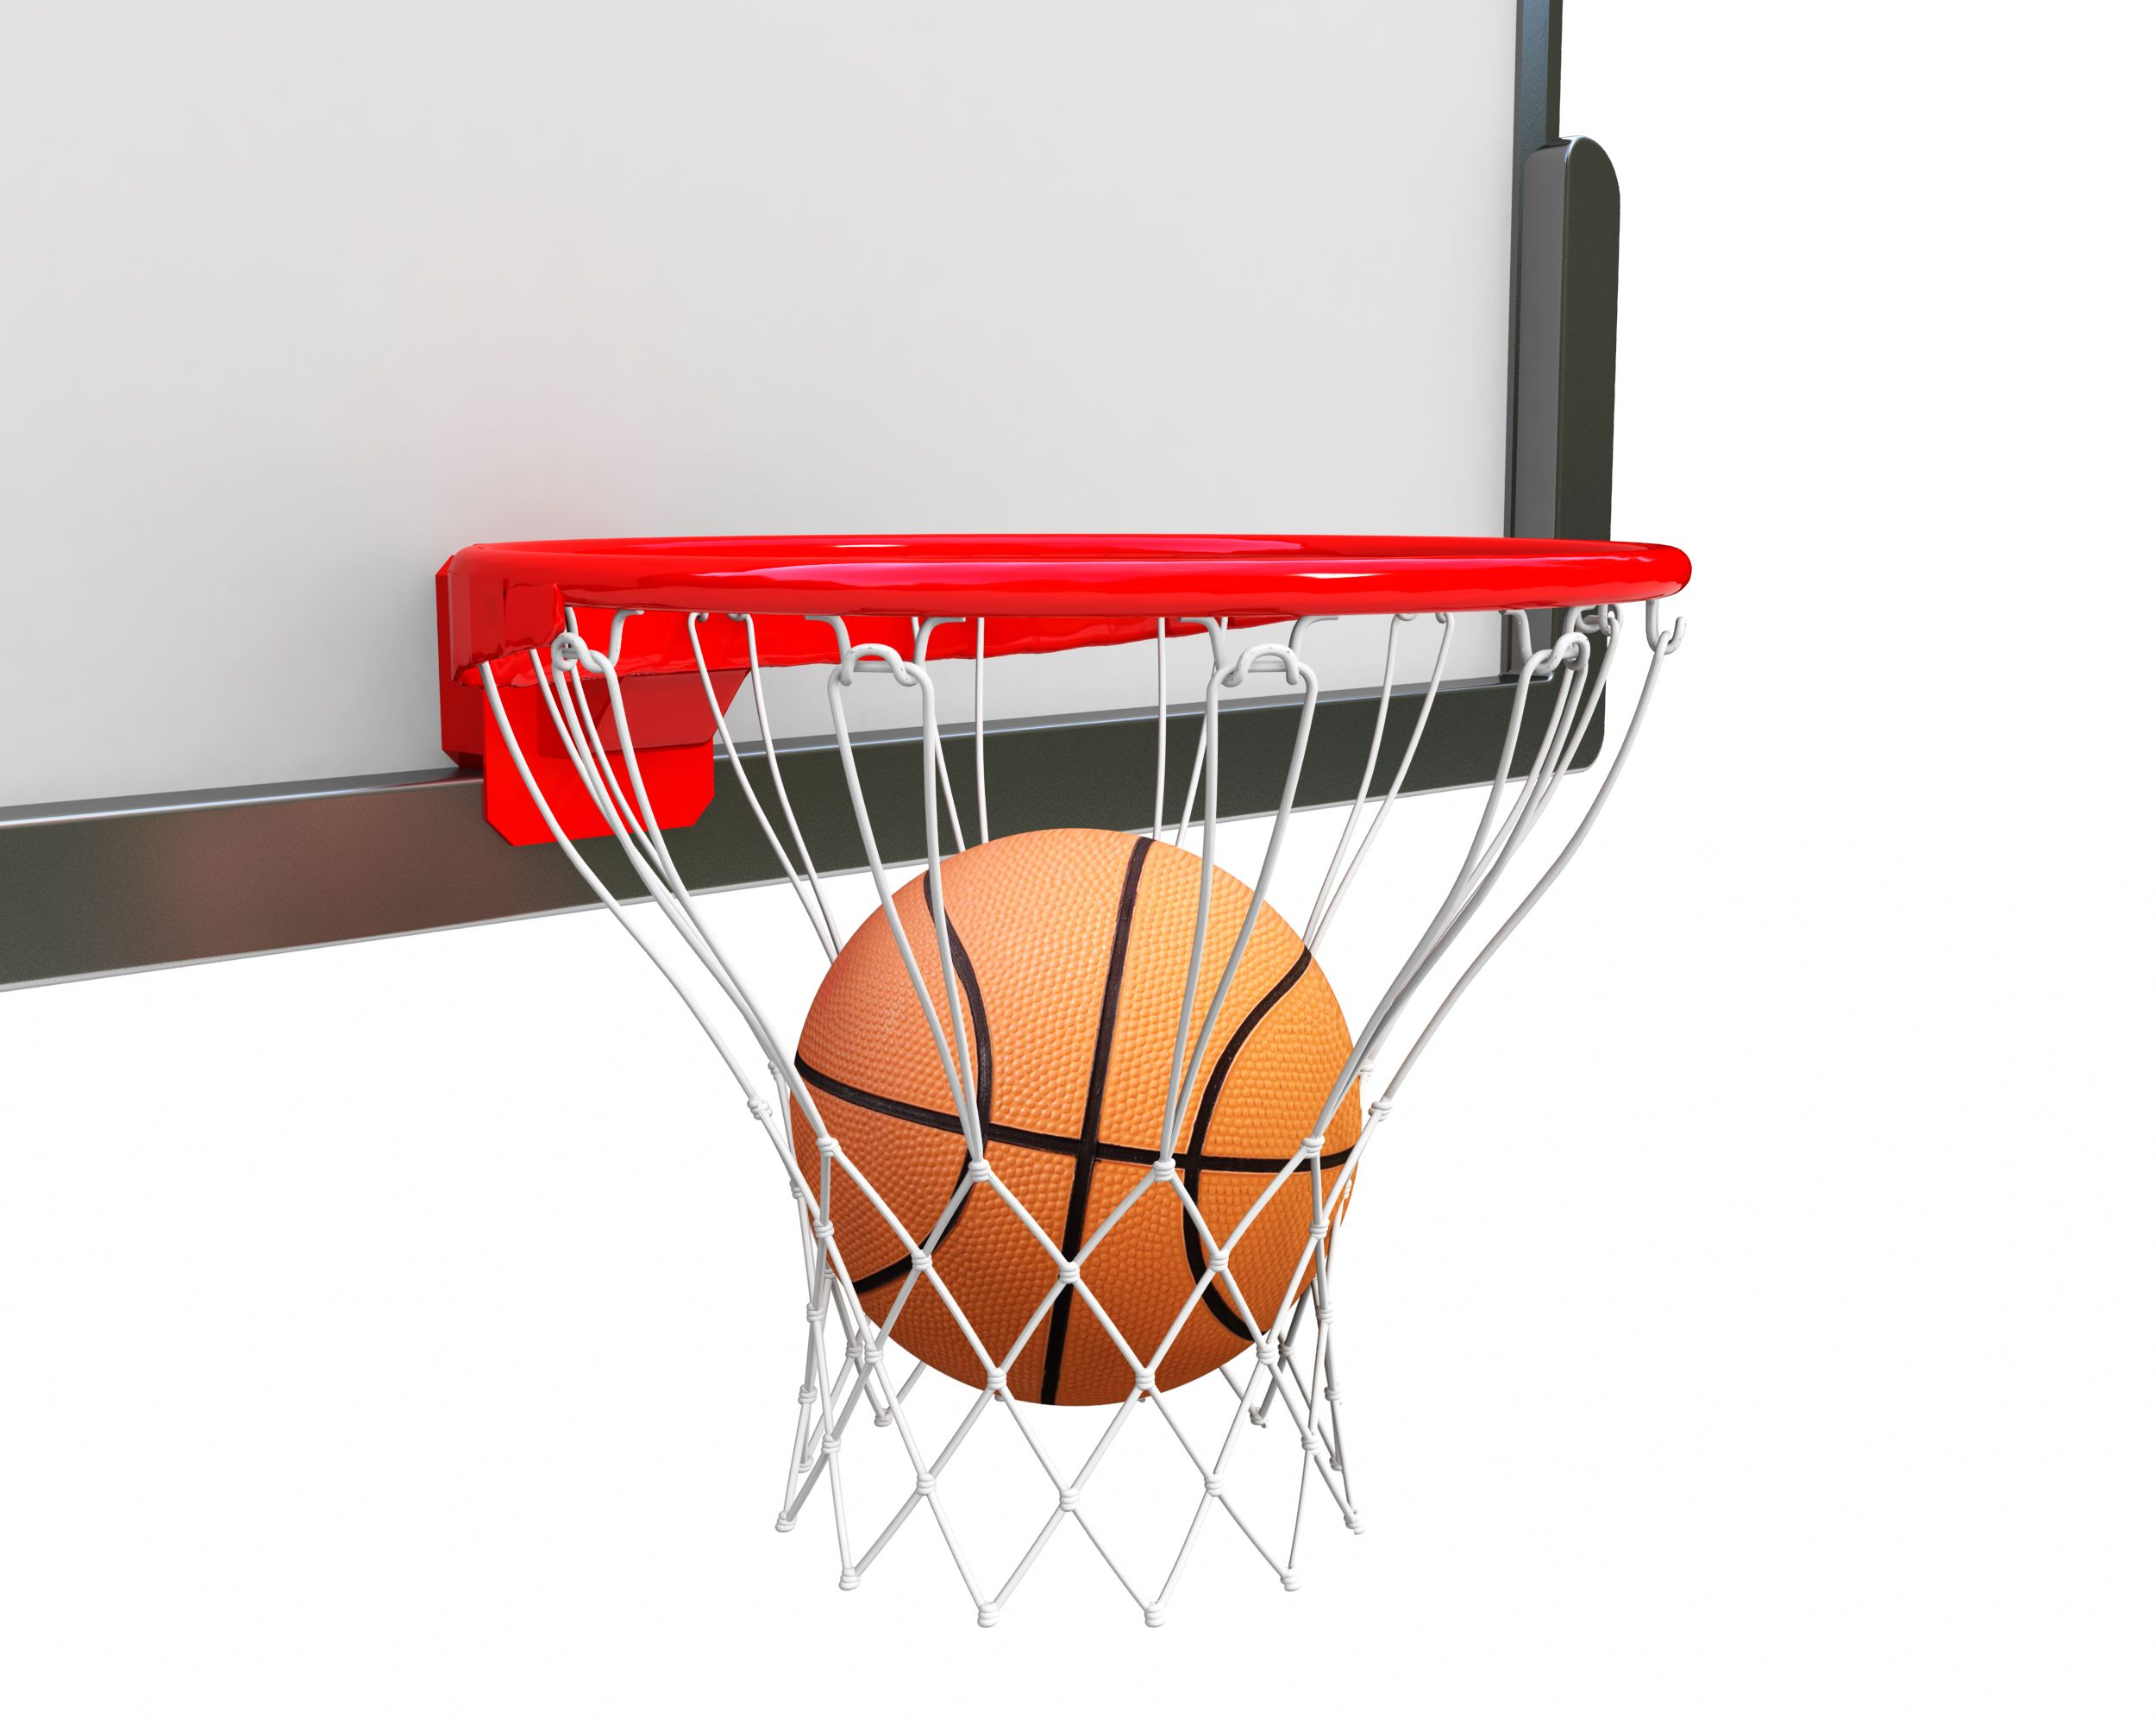 Ball Inside Ring For Basketball Game Stock Photo Templates Powerpoint Slides Ppt Presentation Backgrounds Backgrounds Presentation Themes